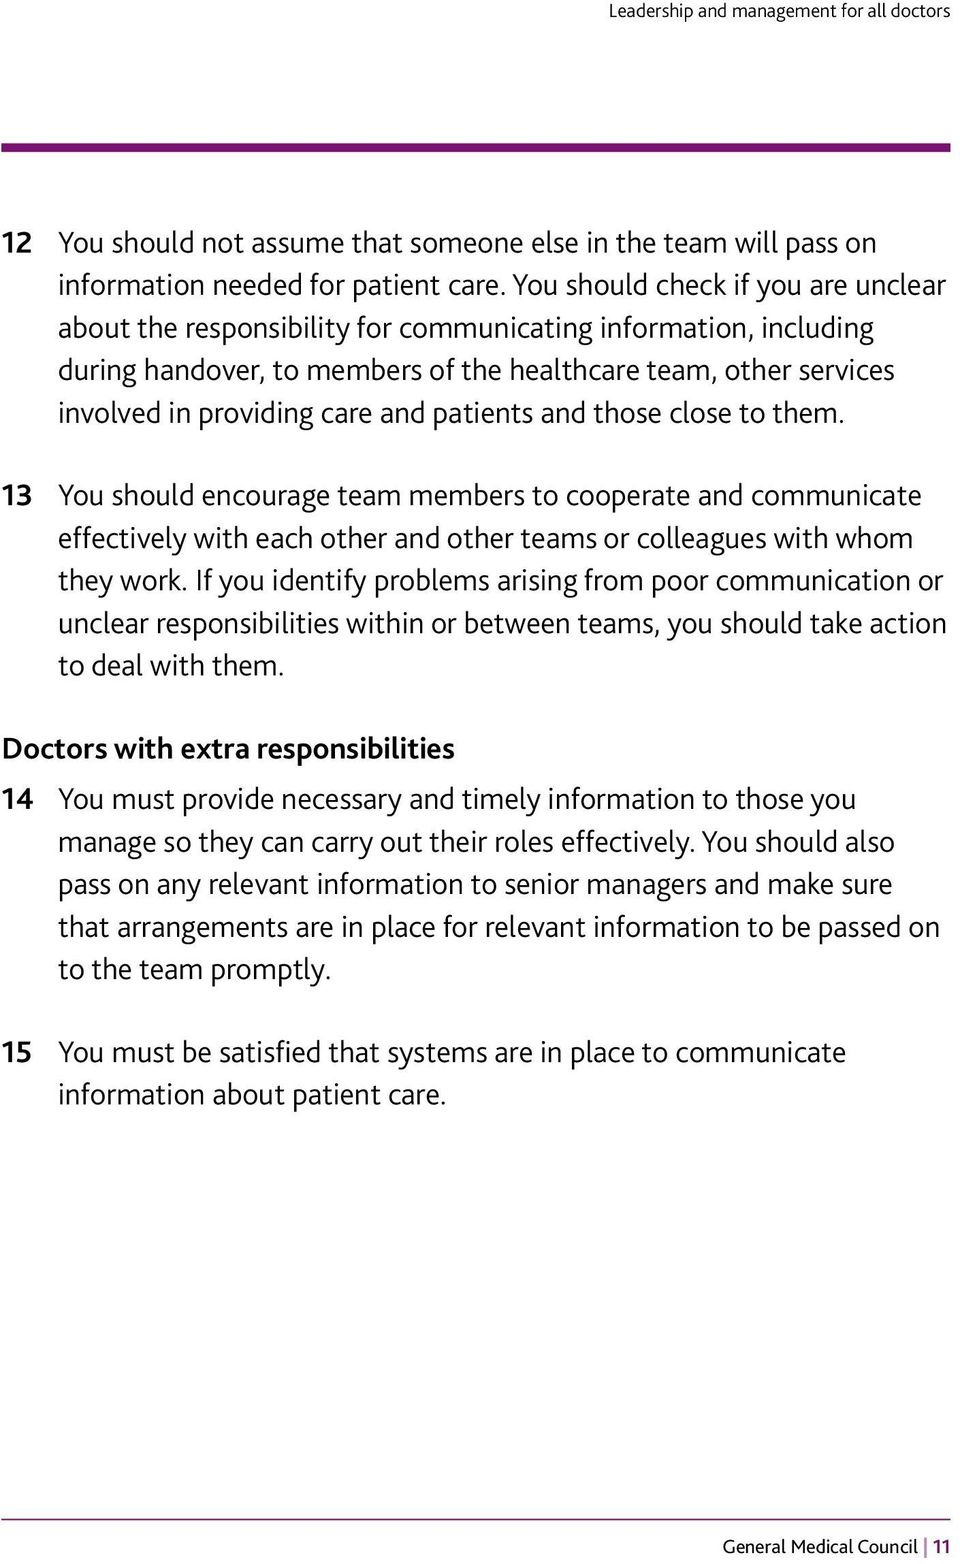 patients and those close to them. 13 You should encourage team members to cooperate and communicate effectively with each other and other teams or colleagues with whom they work.